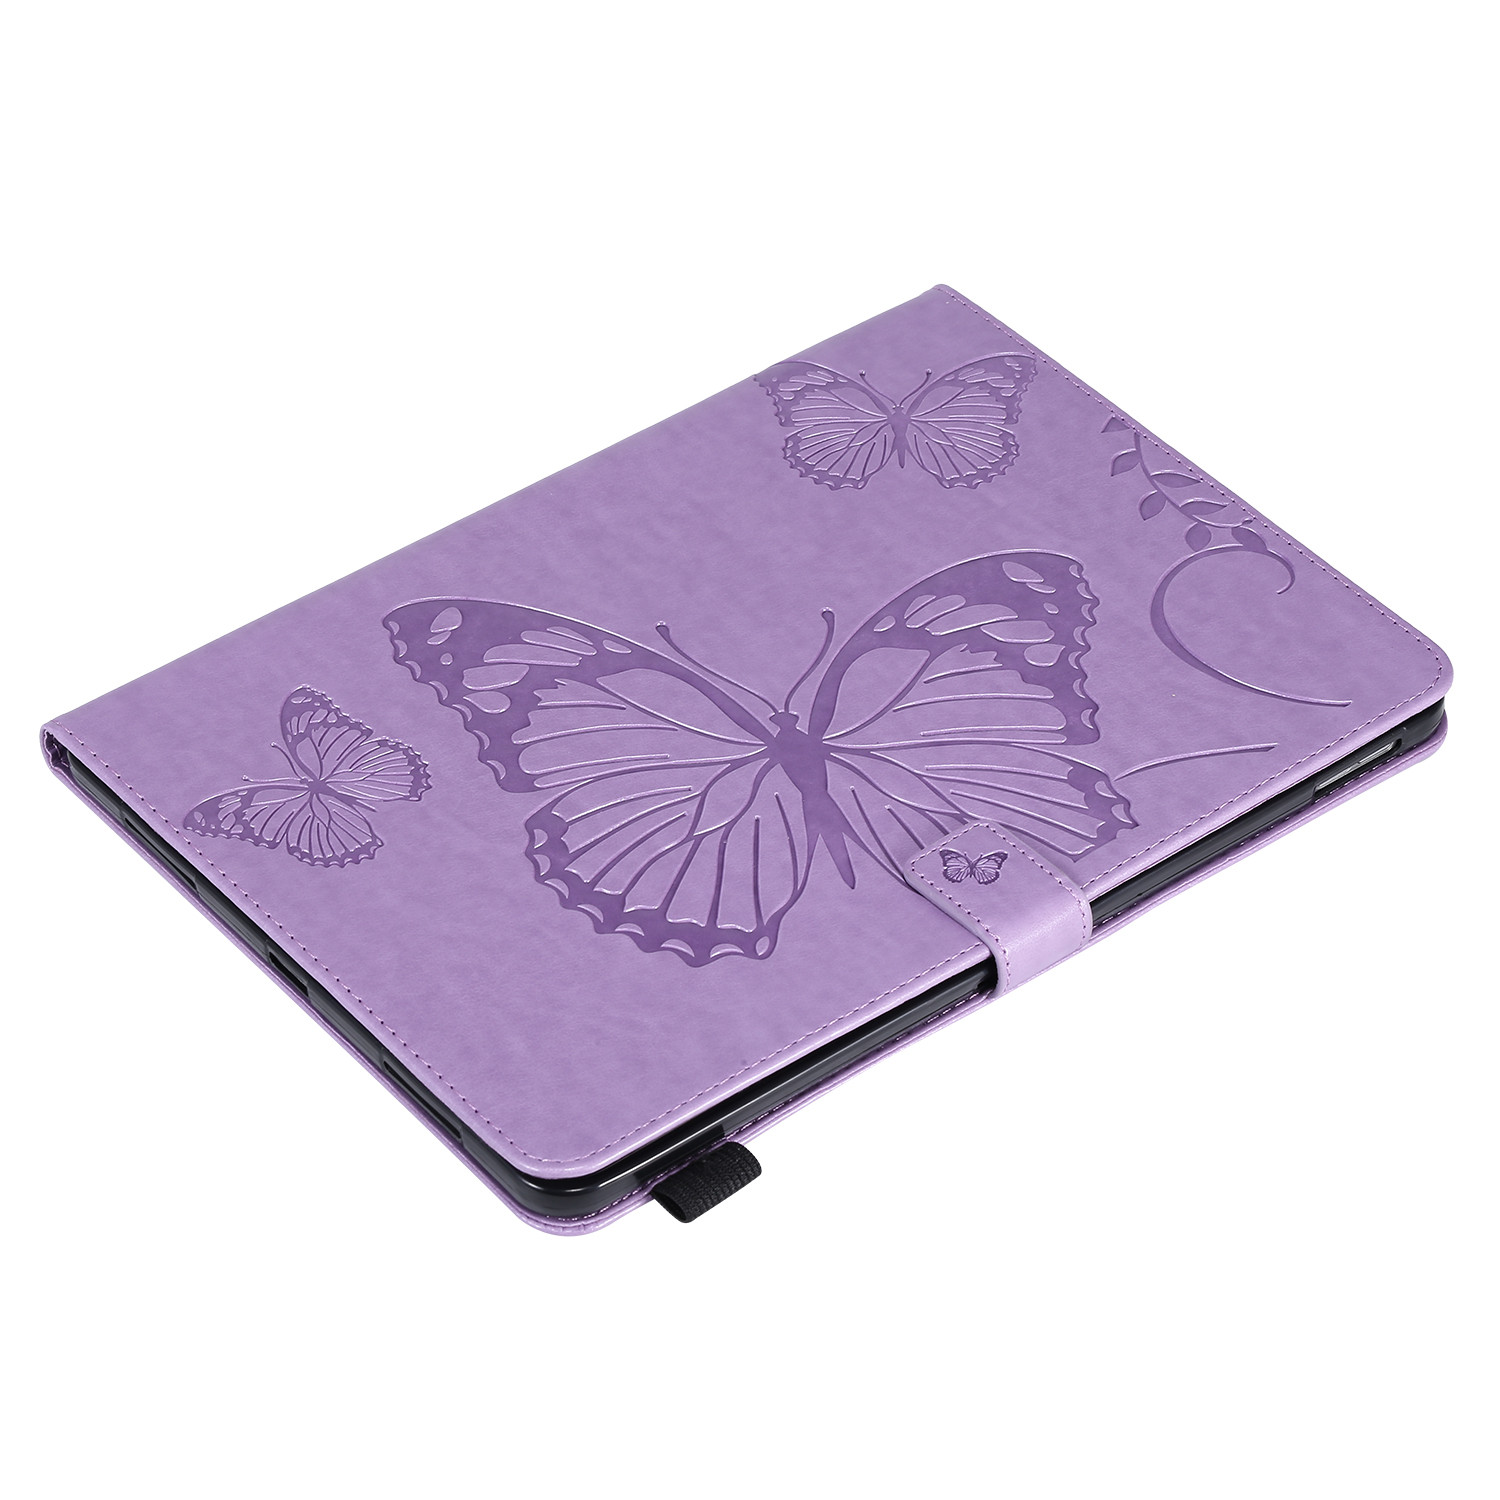 1 White Butterfly Tablet Fundas For iPad Pro 12 9 Case 2020 2018 Folding Folio Embossed Cover For